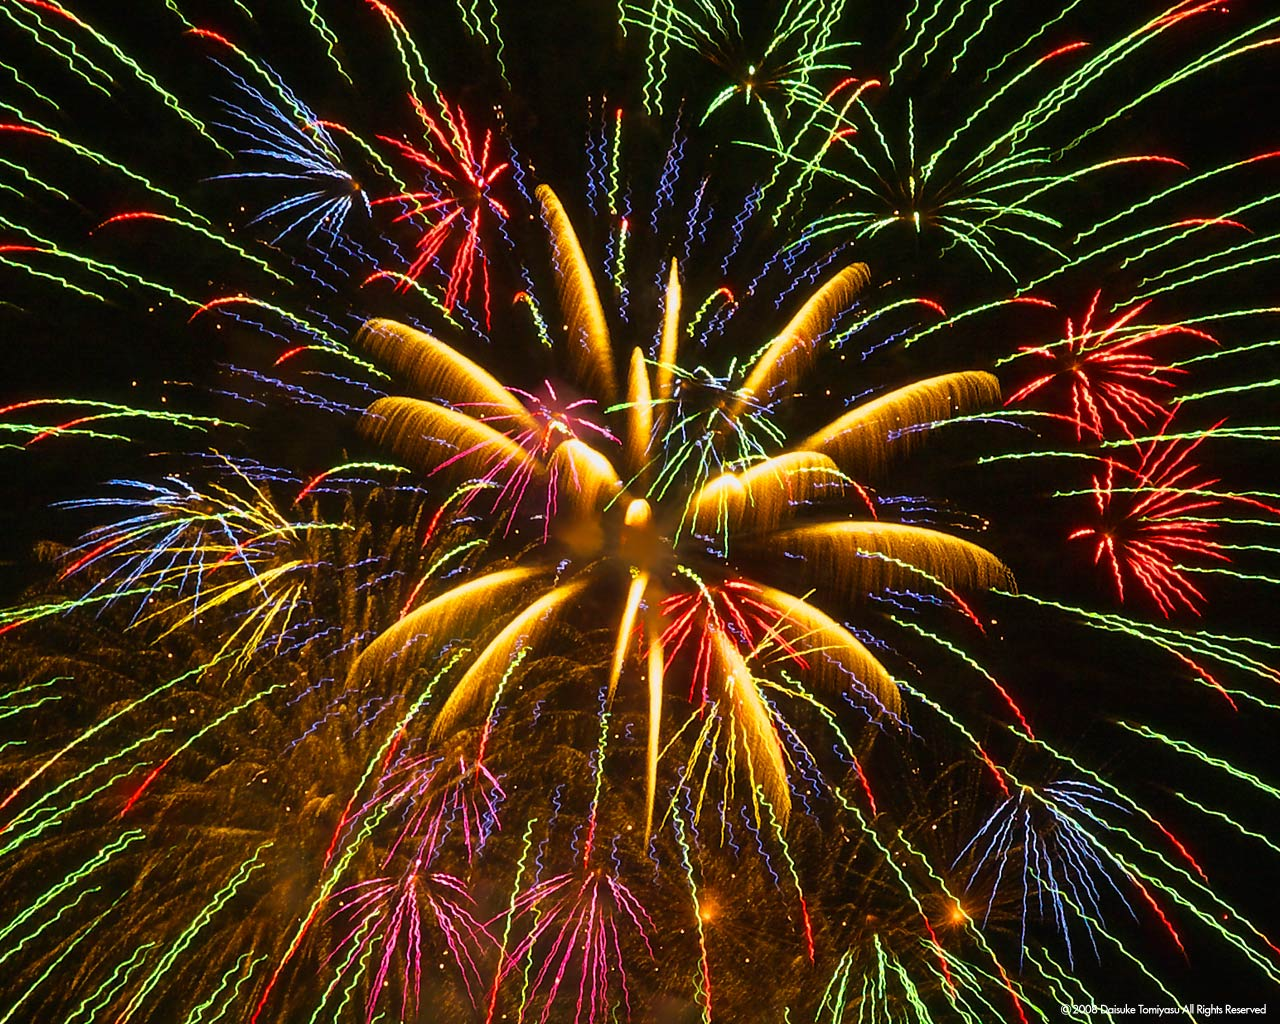 Fireworks Wallpaper Free: Crazy Four Books : Celebrate The 4th And Enter My